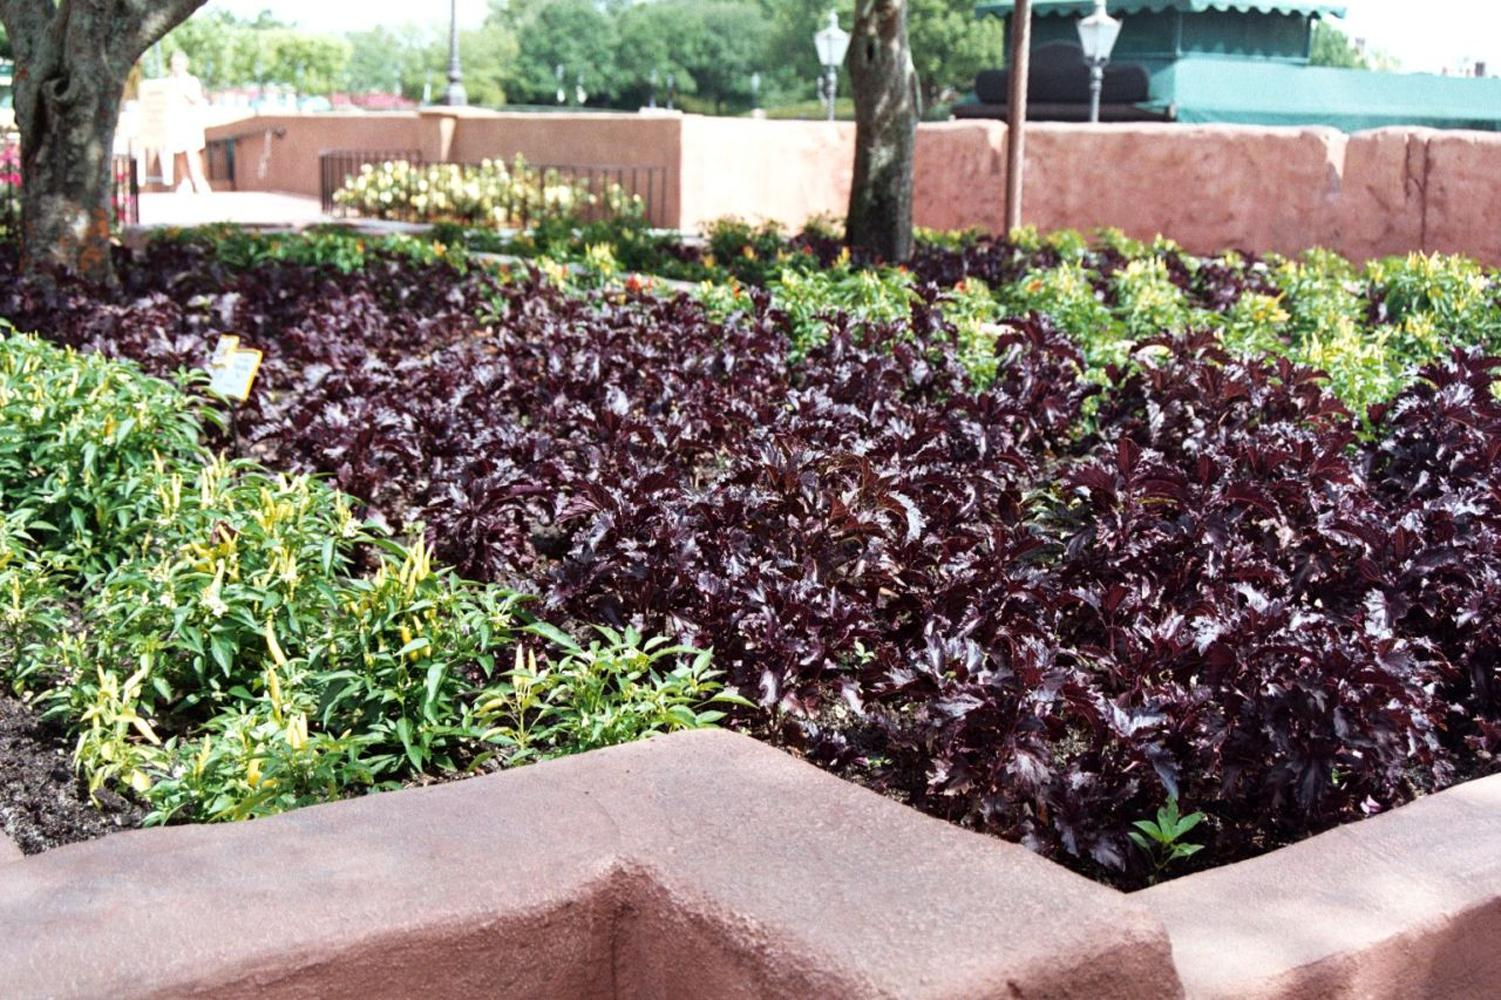 Purple Ruffles basil is as pretty as a coleus in the flowerbed, and it also makes a delicious addition to many culinary dishes.